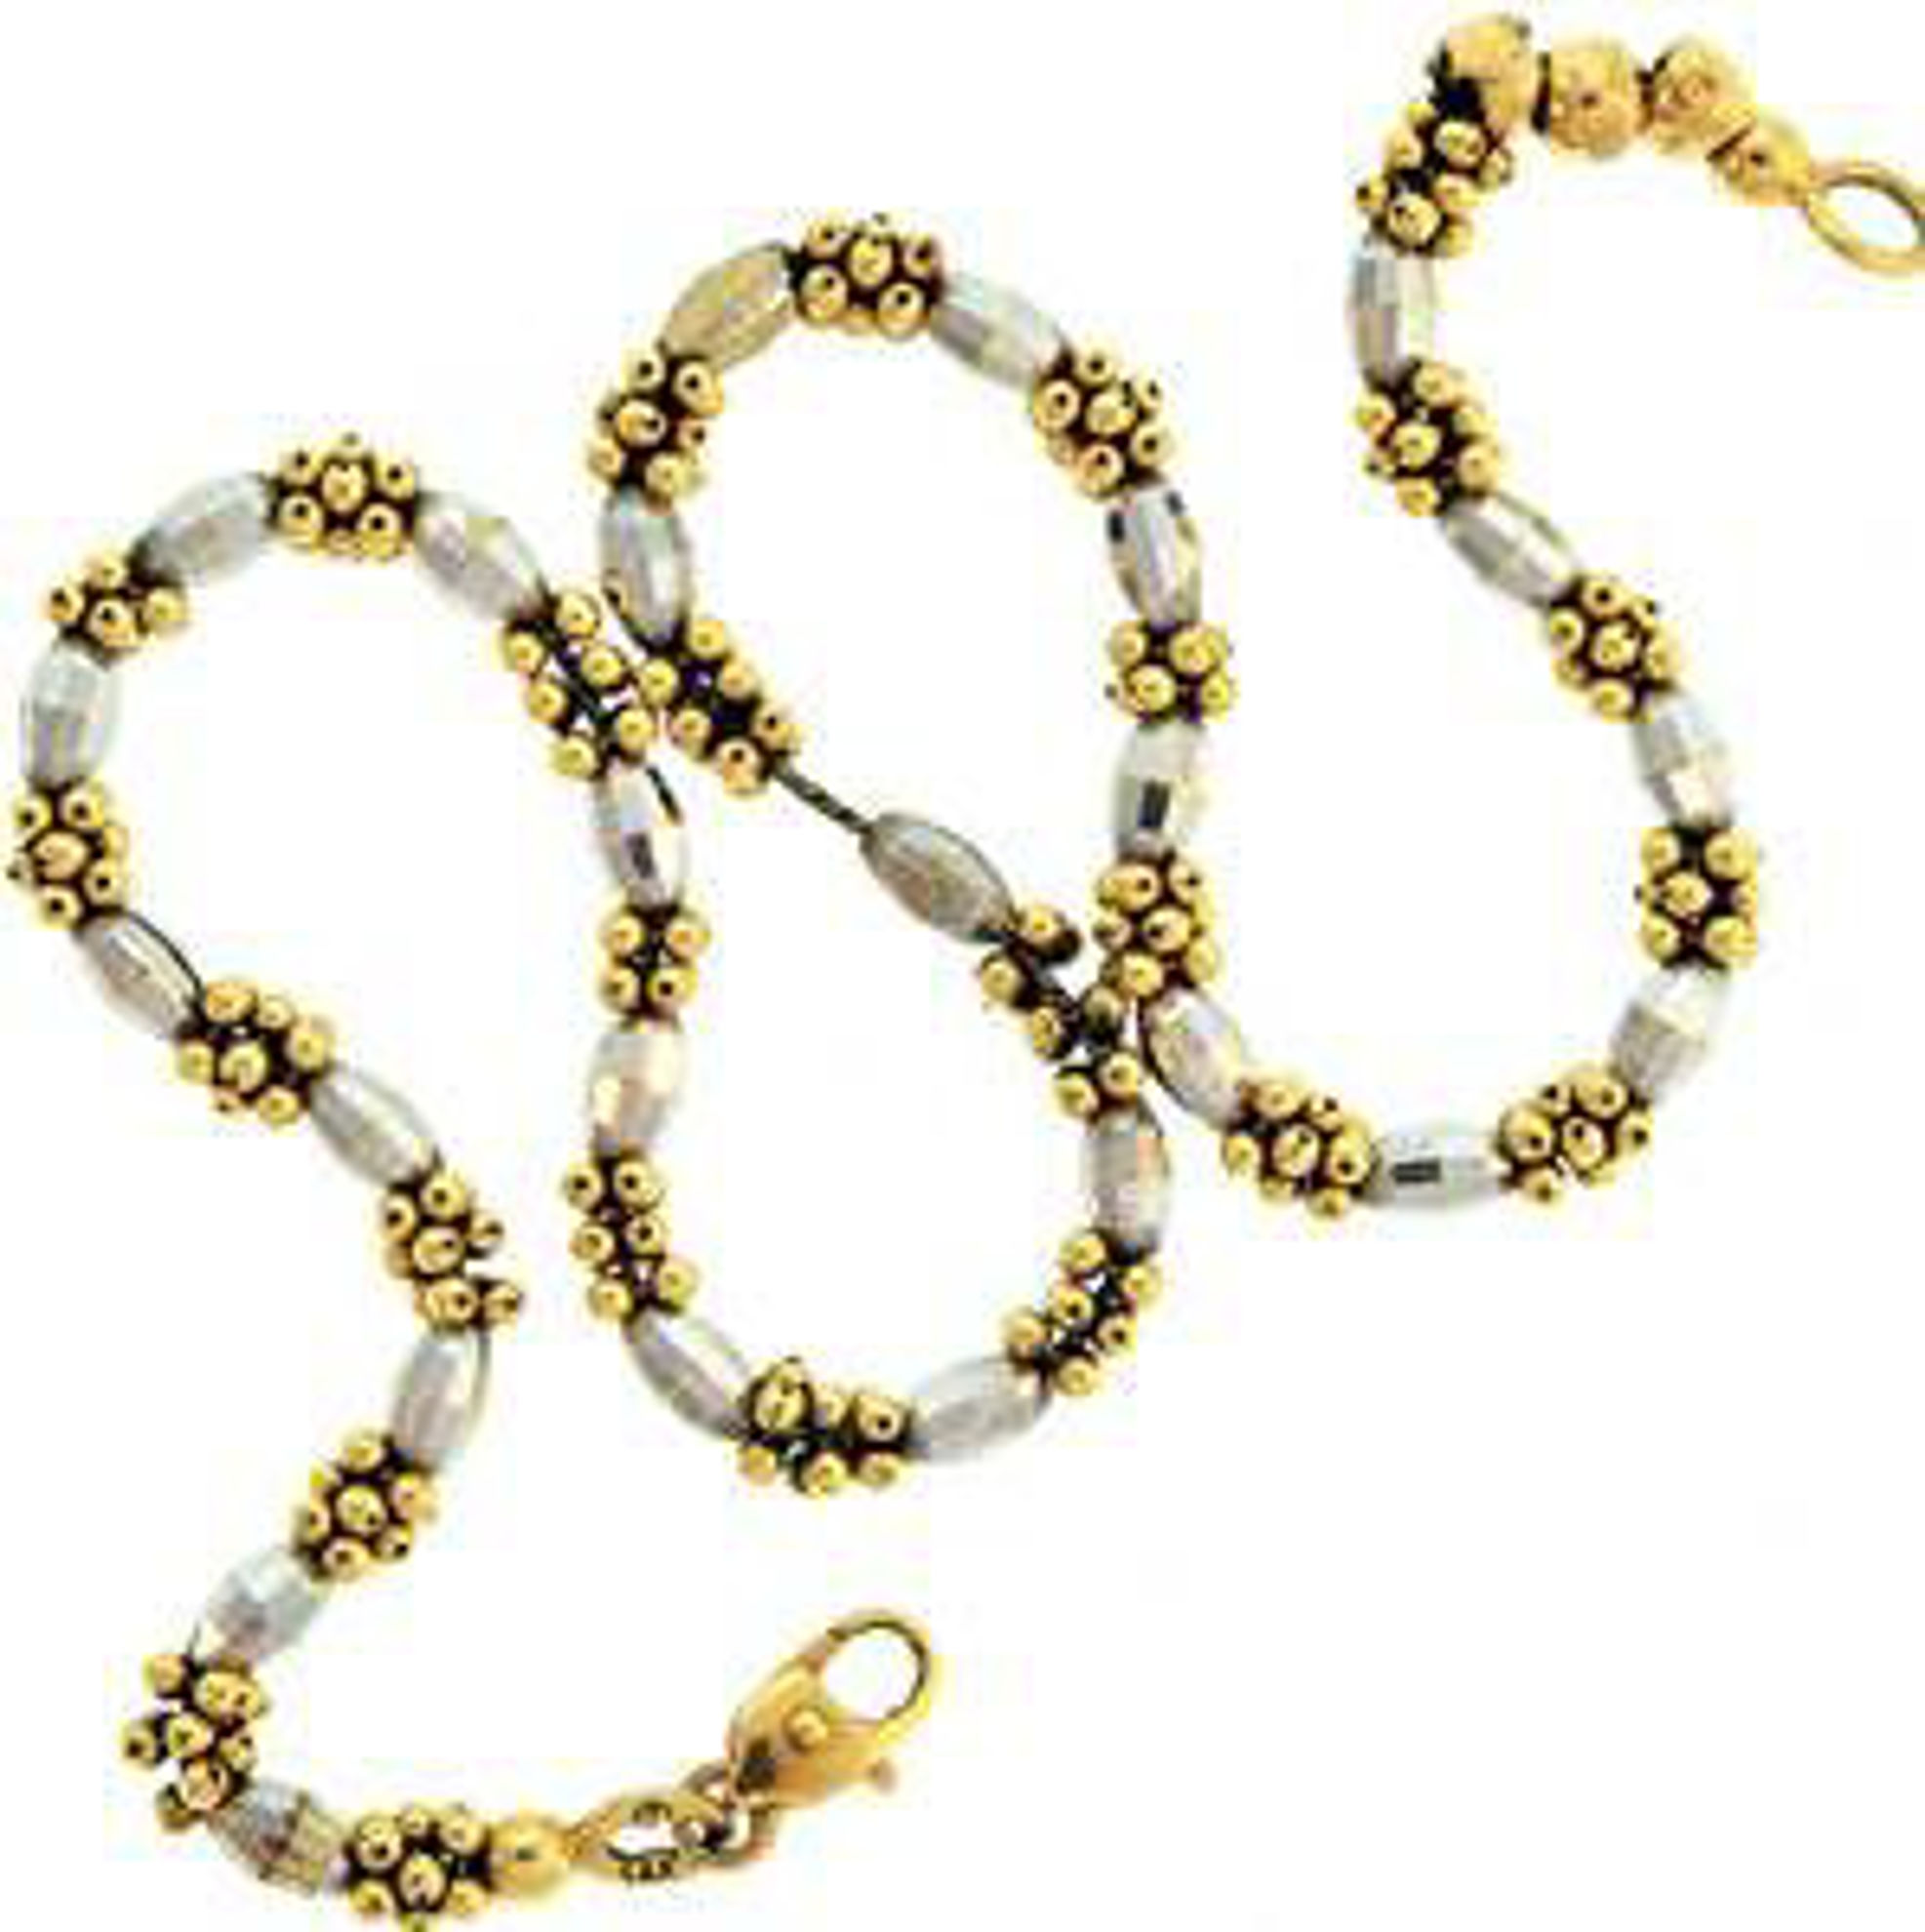 Picture of Bracelets 14kt-5.9 DWT, 9.2 Grams